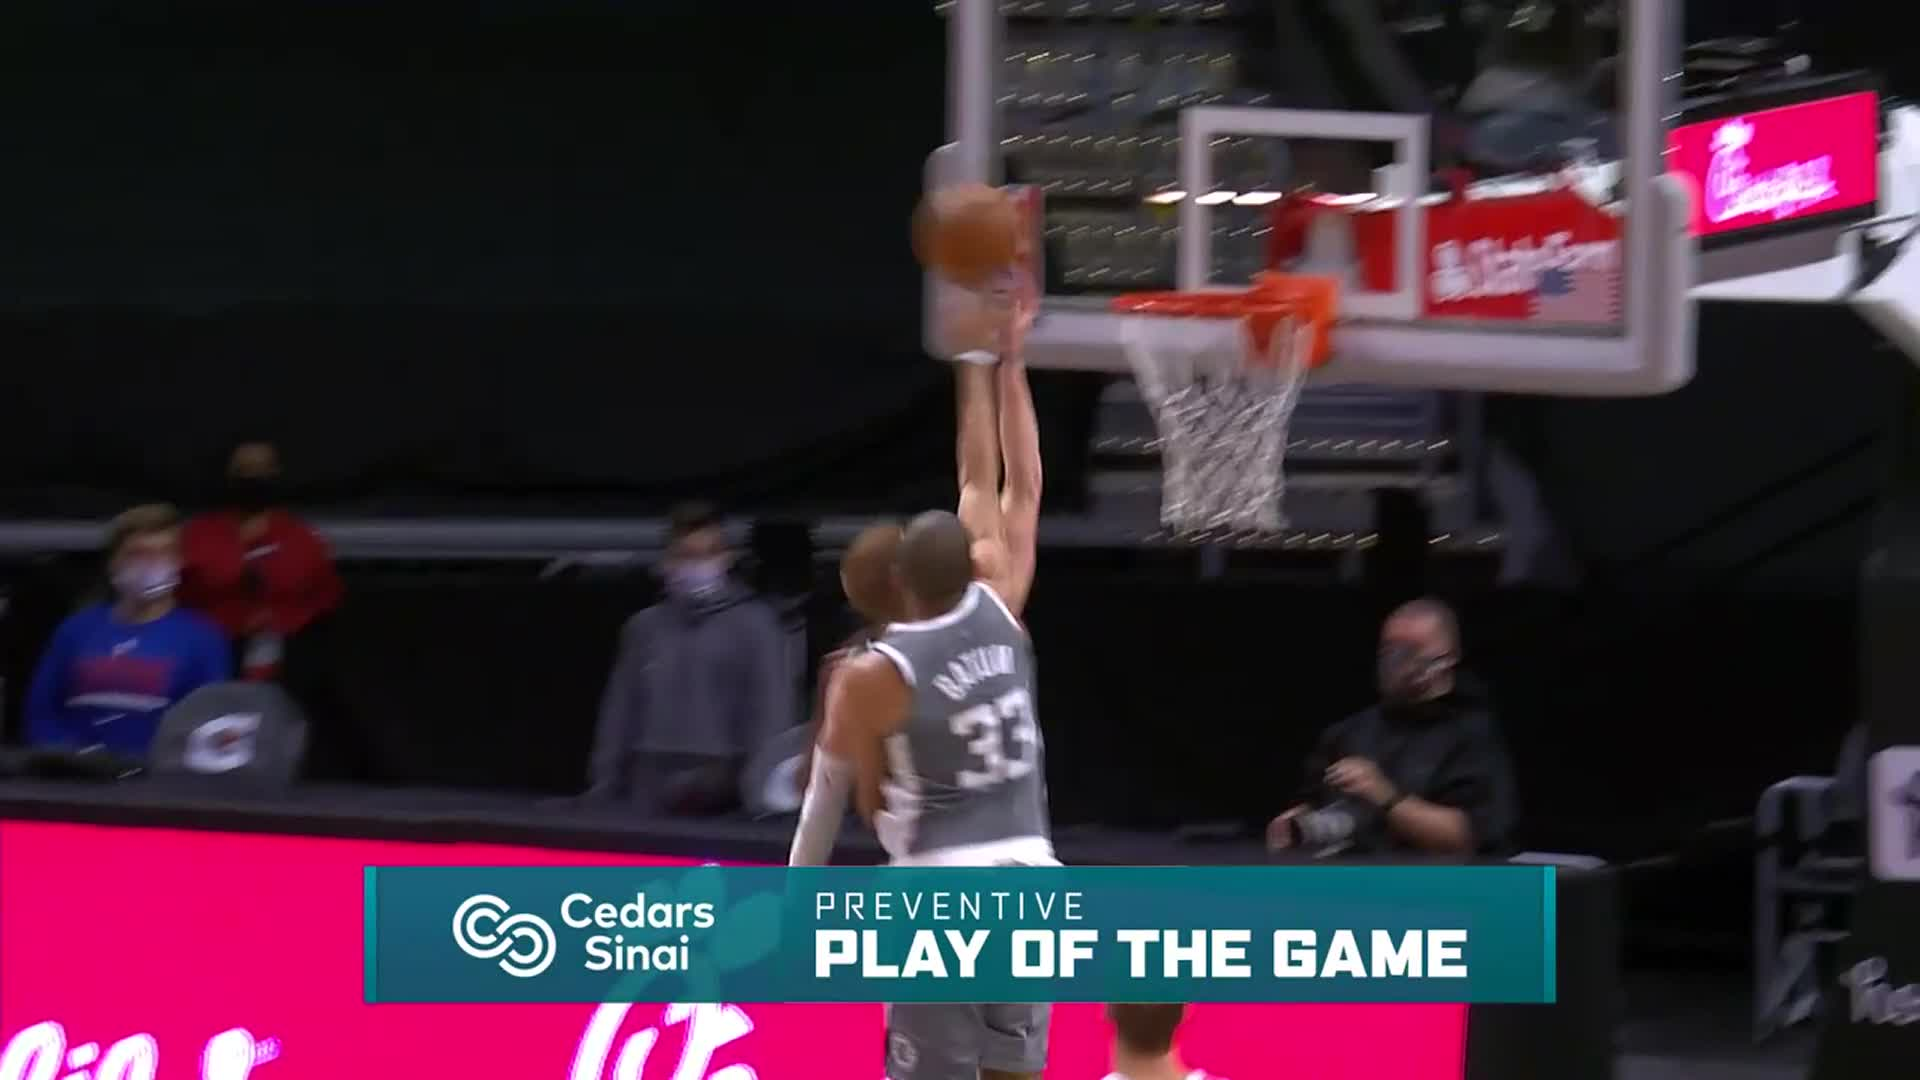 Cedars-Sinai Preventive Play of the Game | Clippers vs Bucks (3.29.21)